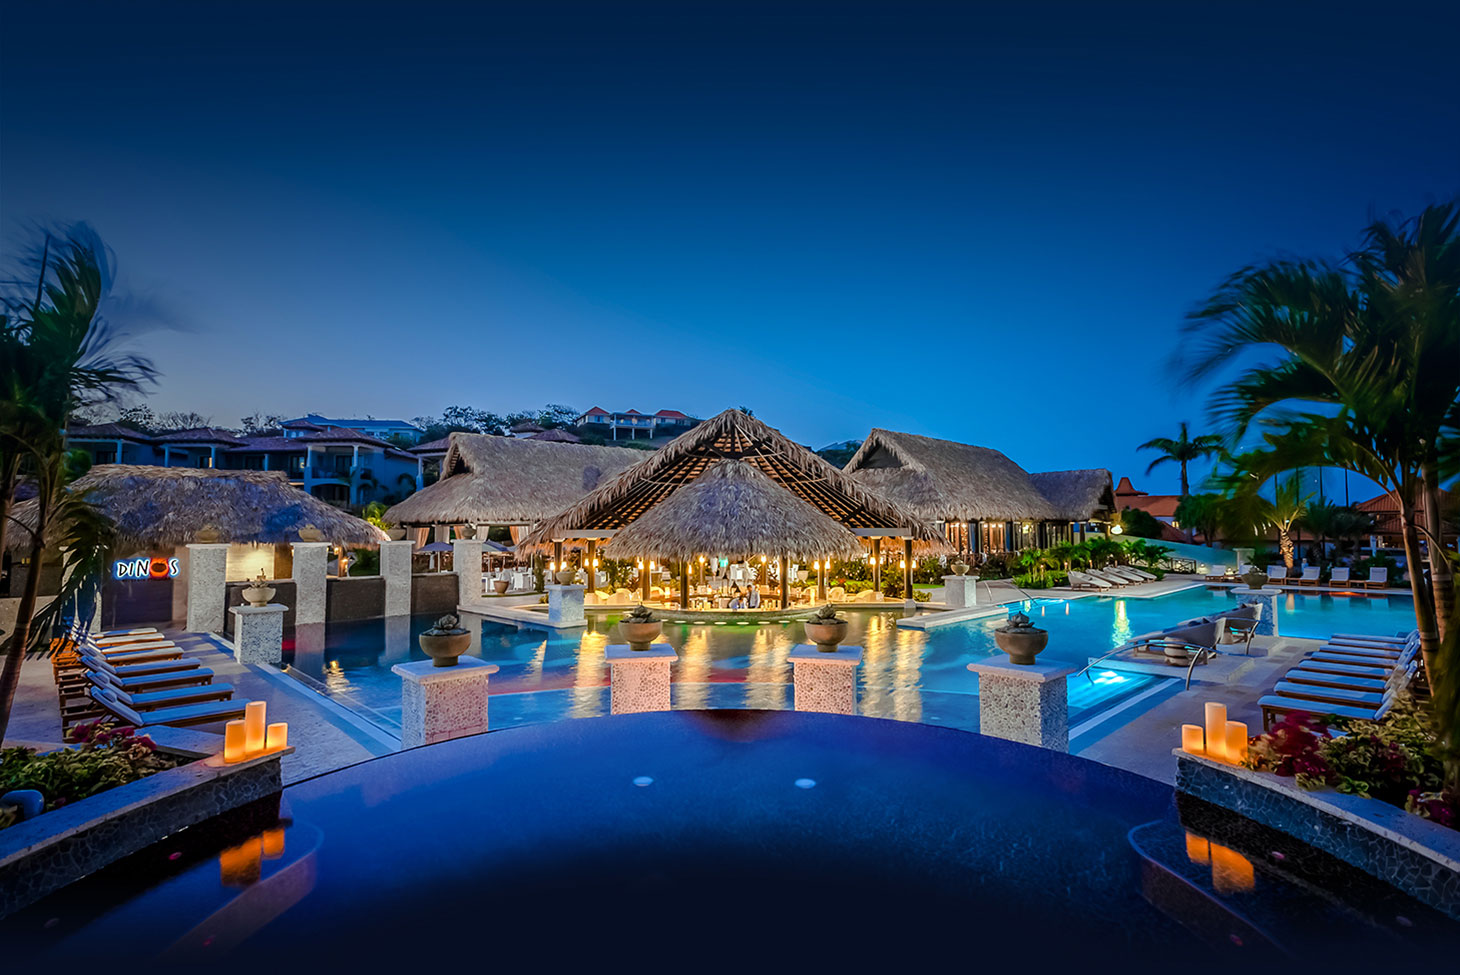 Signature Pools At Sandals Luxury Included Resorts